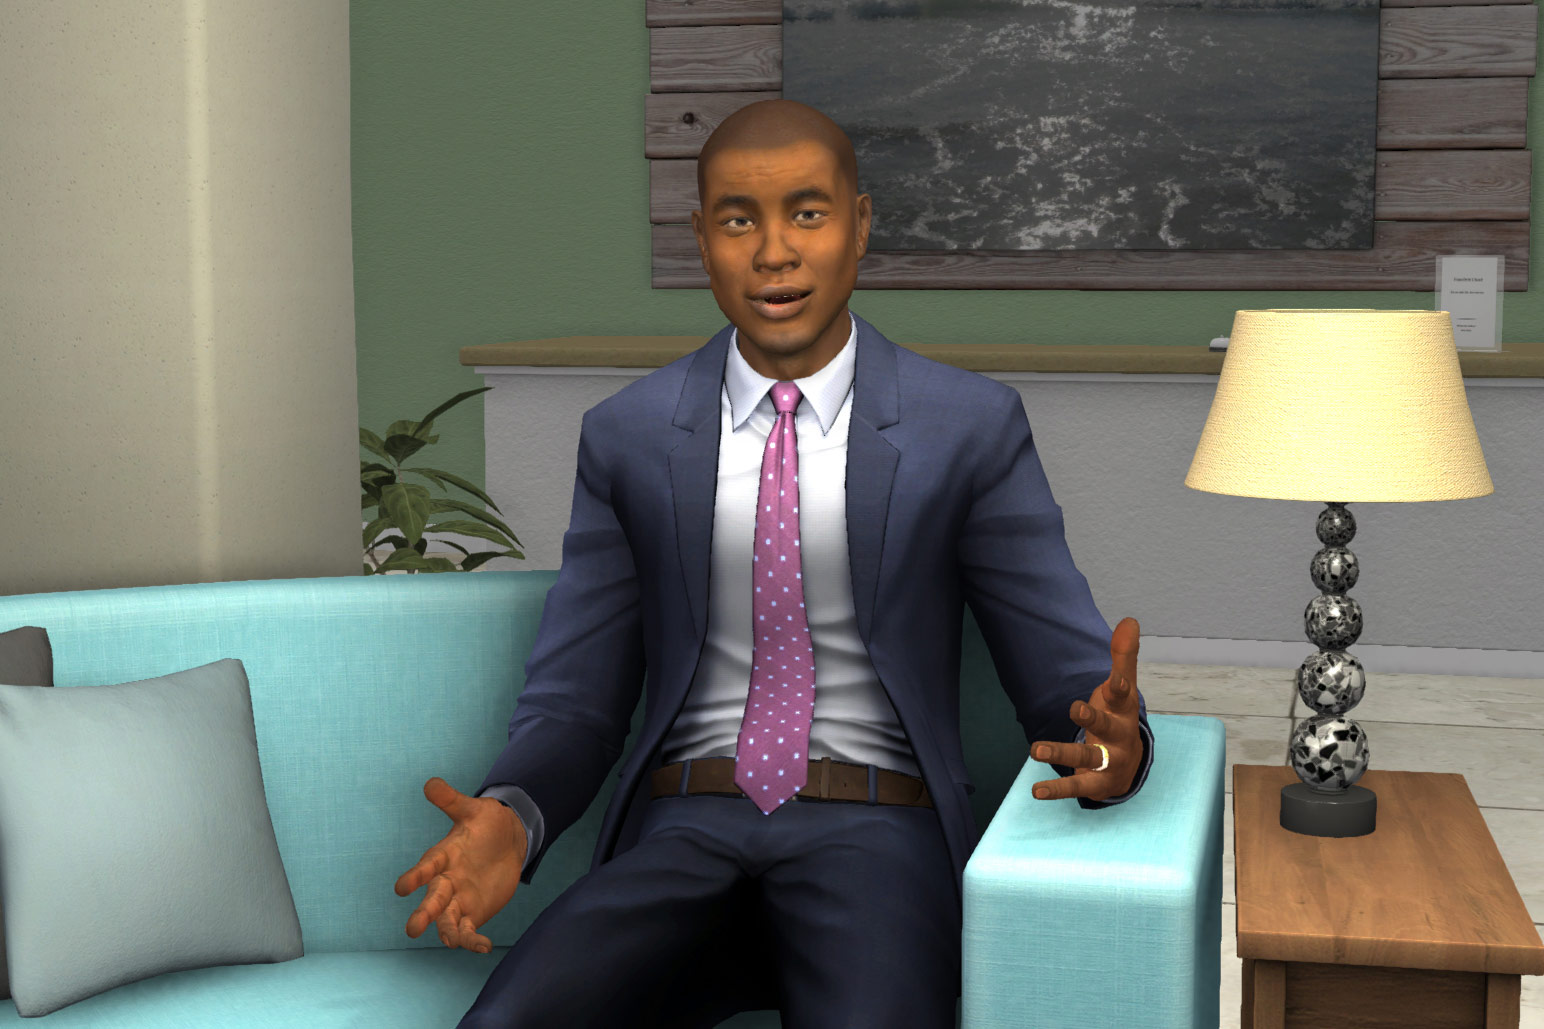 Kevin, a Virtual Interactive Training Agent named Kevin who was designed by the University of Southern California Institute for Creative Technologies to help students that have autism spectrum disorders. (Illustration/Courtesy of the Institute for Creative Technologies)